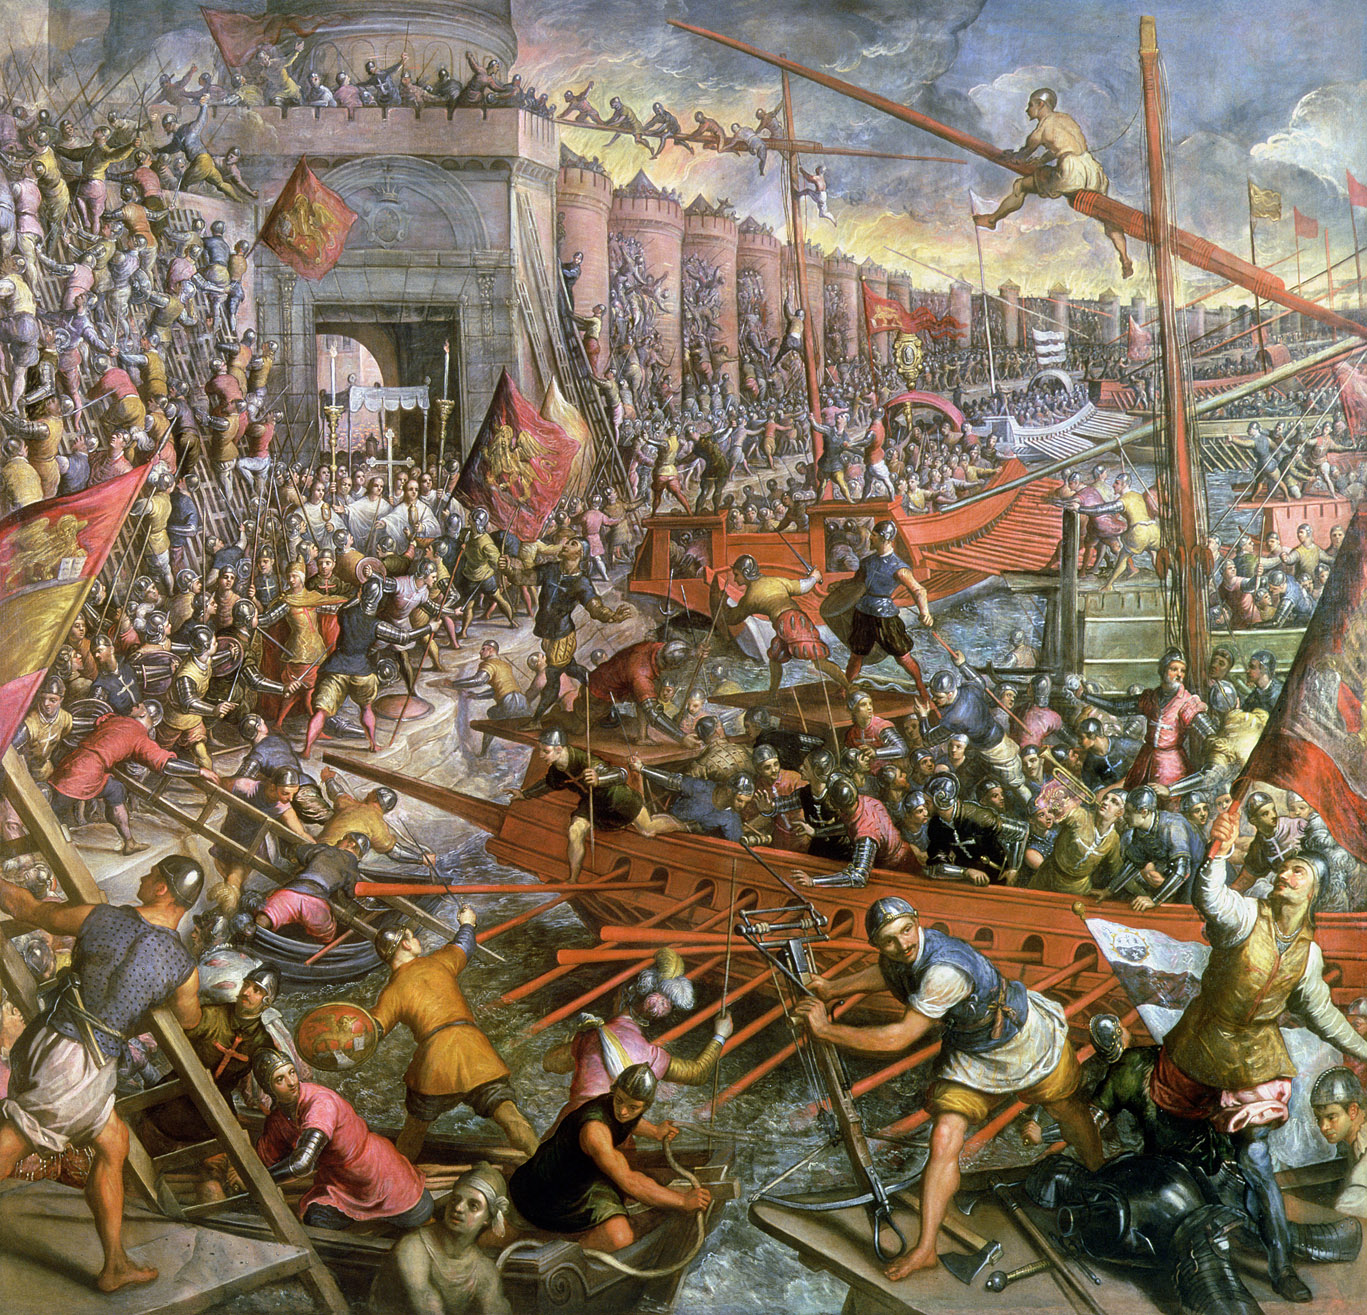 The Capture of Constantinople in 1204, by Tintoretto, c. 1580.